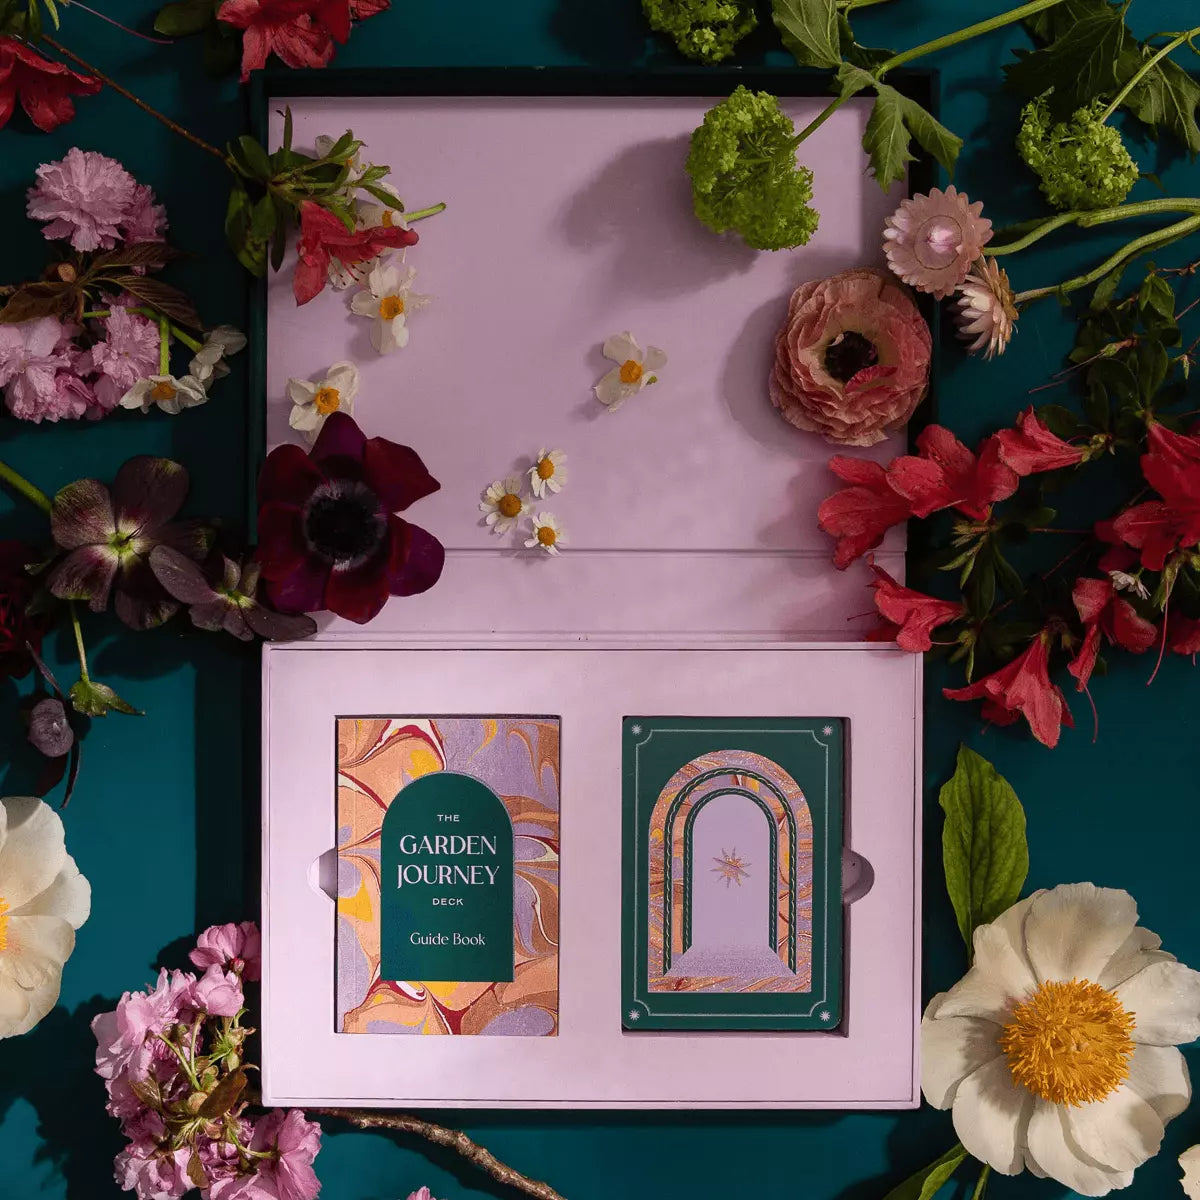 The Garden Journey set lies on a flower-strewn table, showing the booklet and cards.